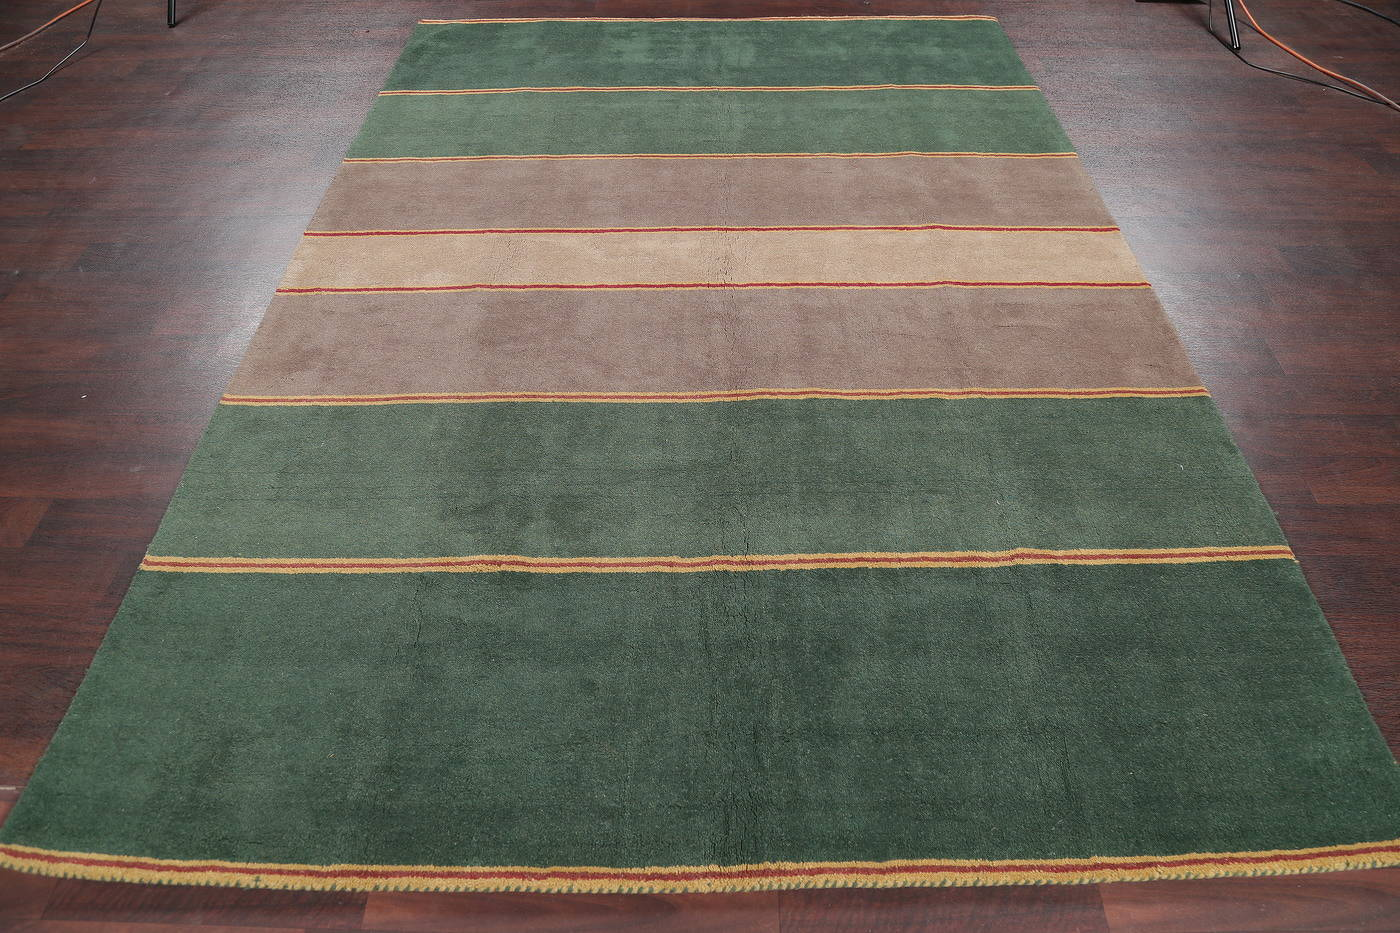 Stripe Tufted Modern Indian Oriental Area Rug 7x10